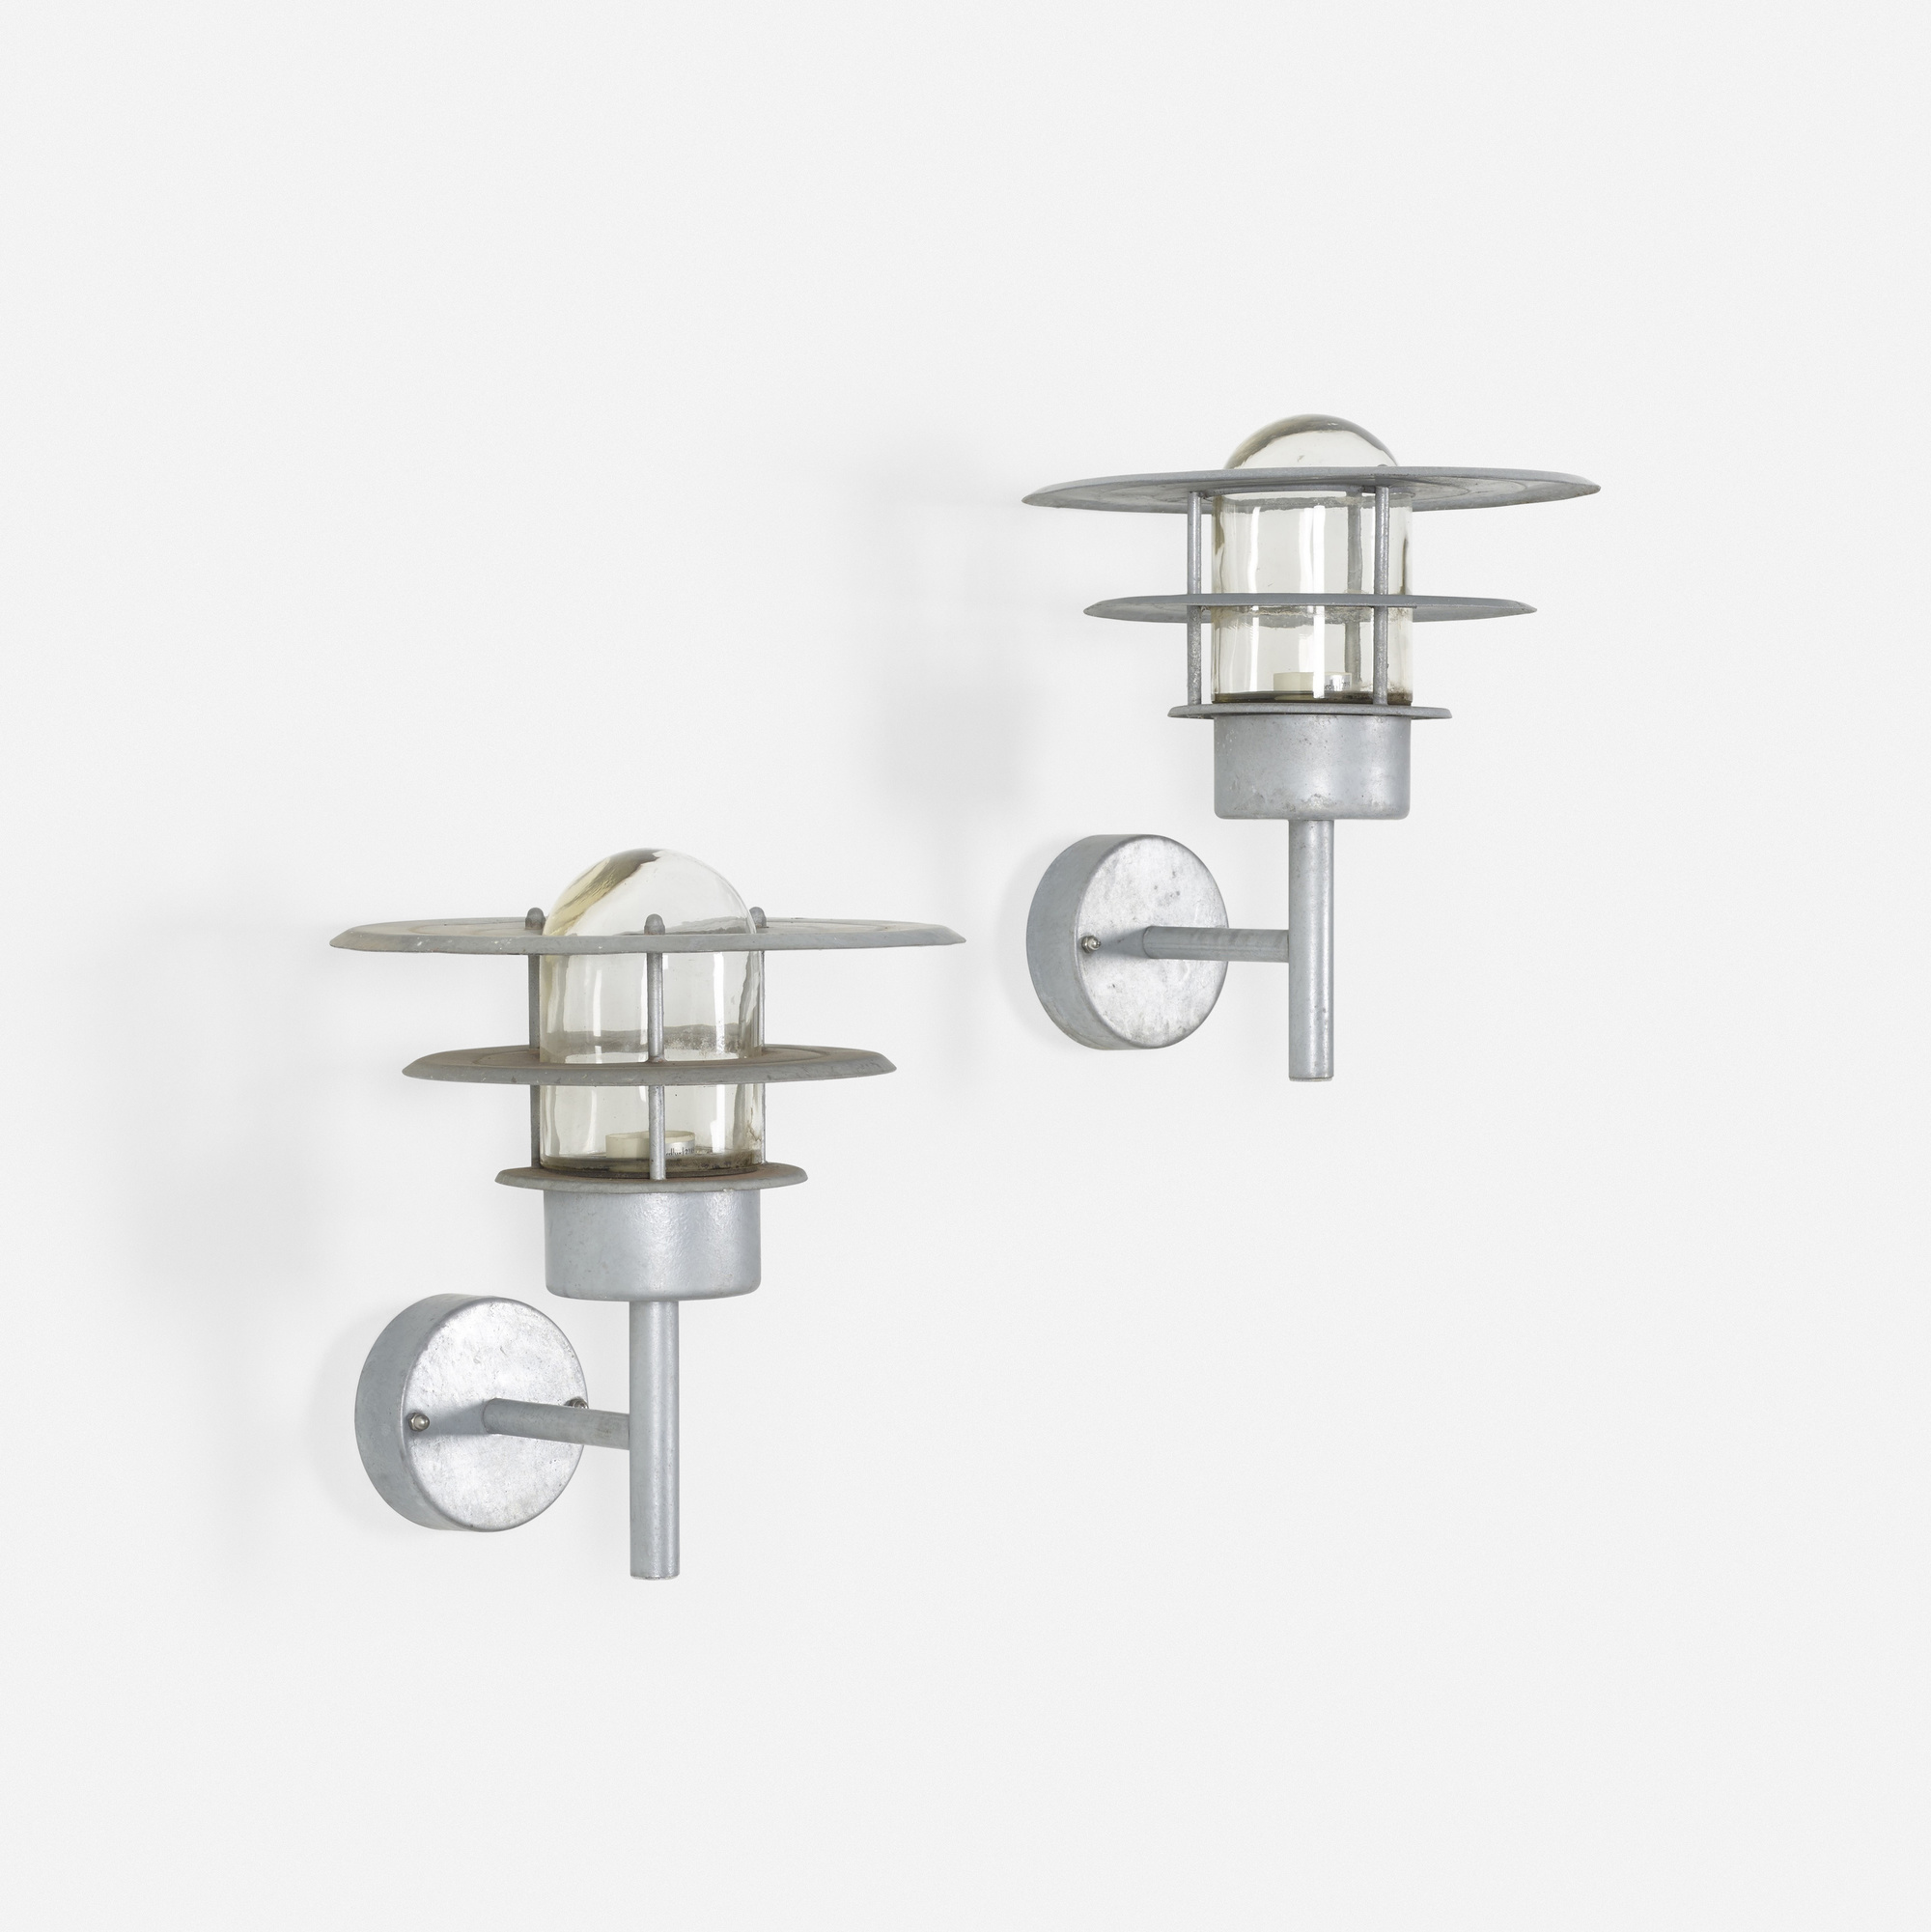 641: Nordlux / outdoor sconces, pair (1 of 1)